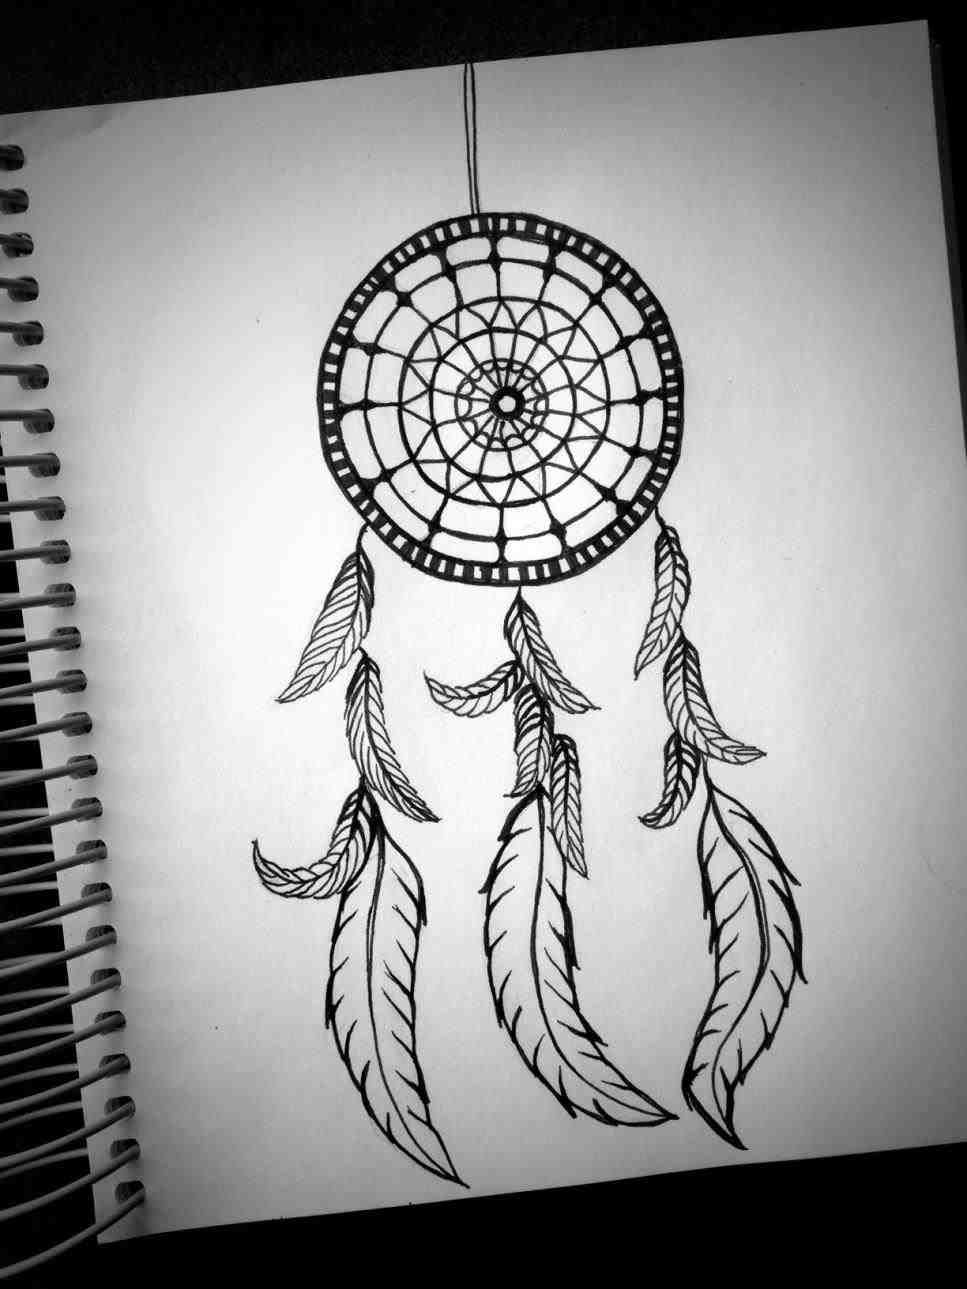 The Images Collection Of Hogar Pinterest And Google Drawing Cool Cool Drawings Tumblr Dreamcatcher Drawing Tumblr Drawings Easy